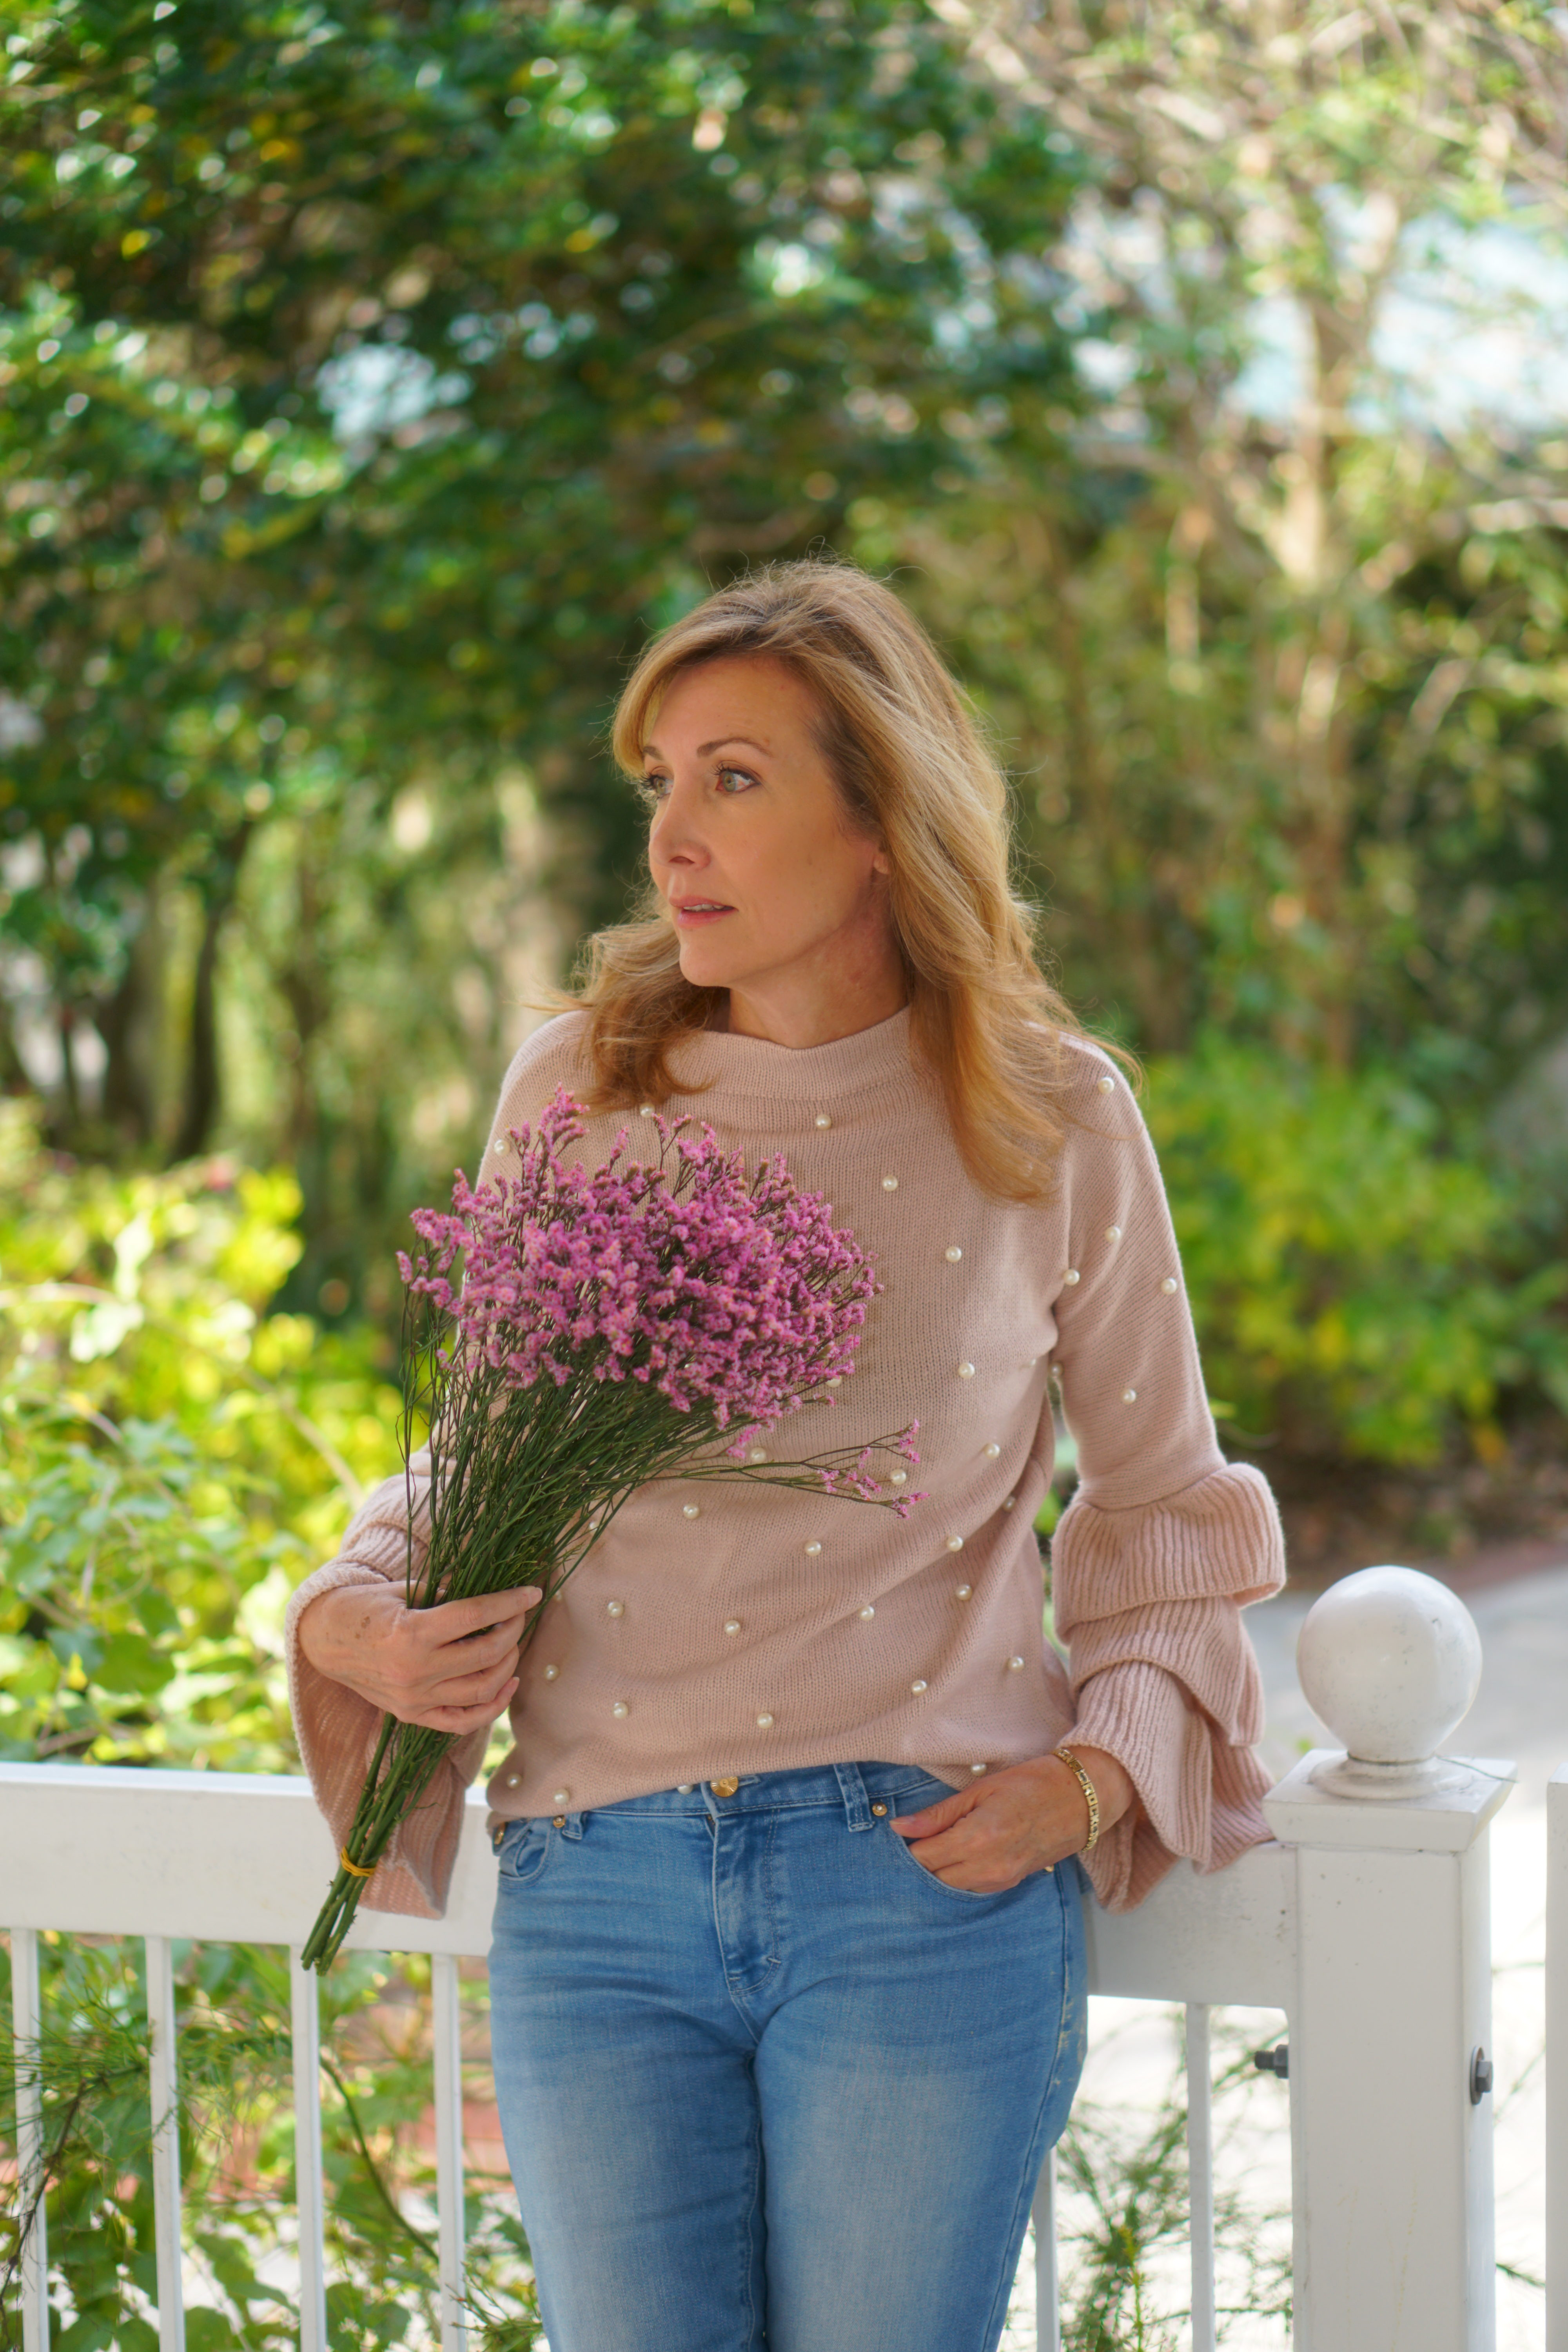 Nina Bandoni of Sharing A Journey with purple flowers wearing pink sweater and blue jeans